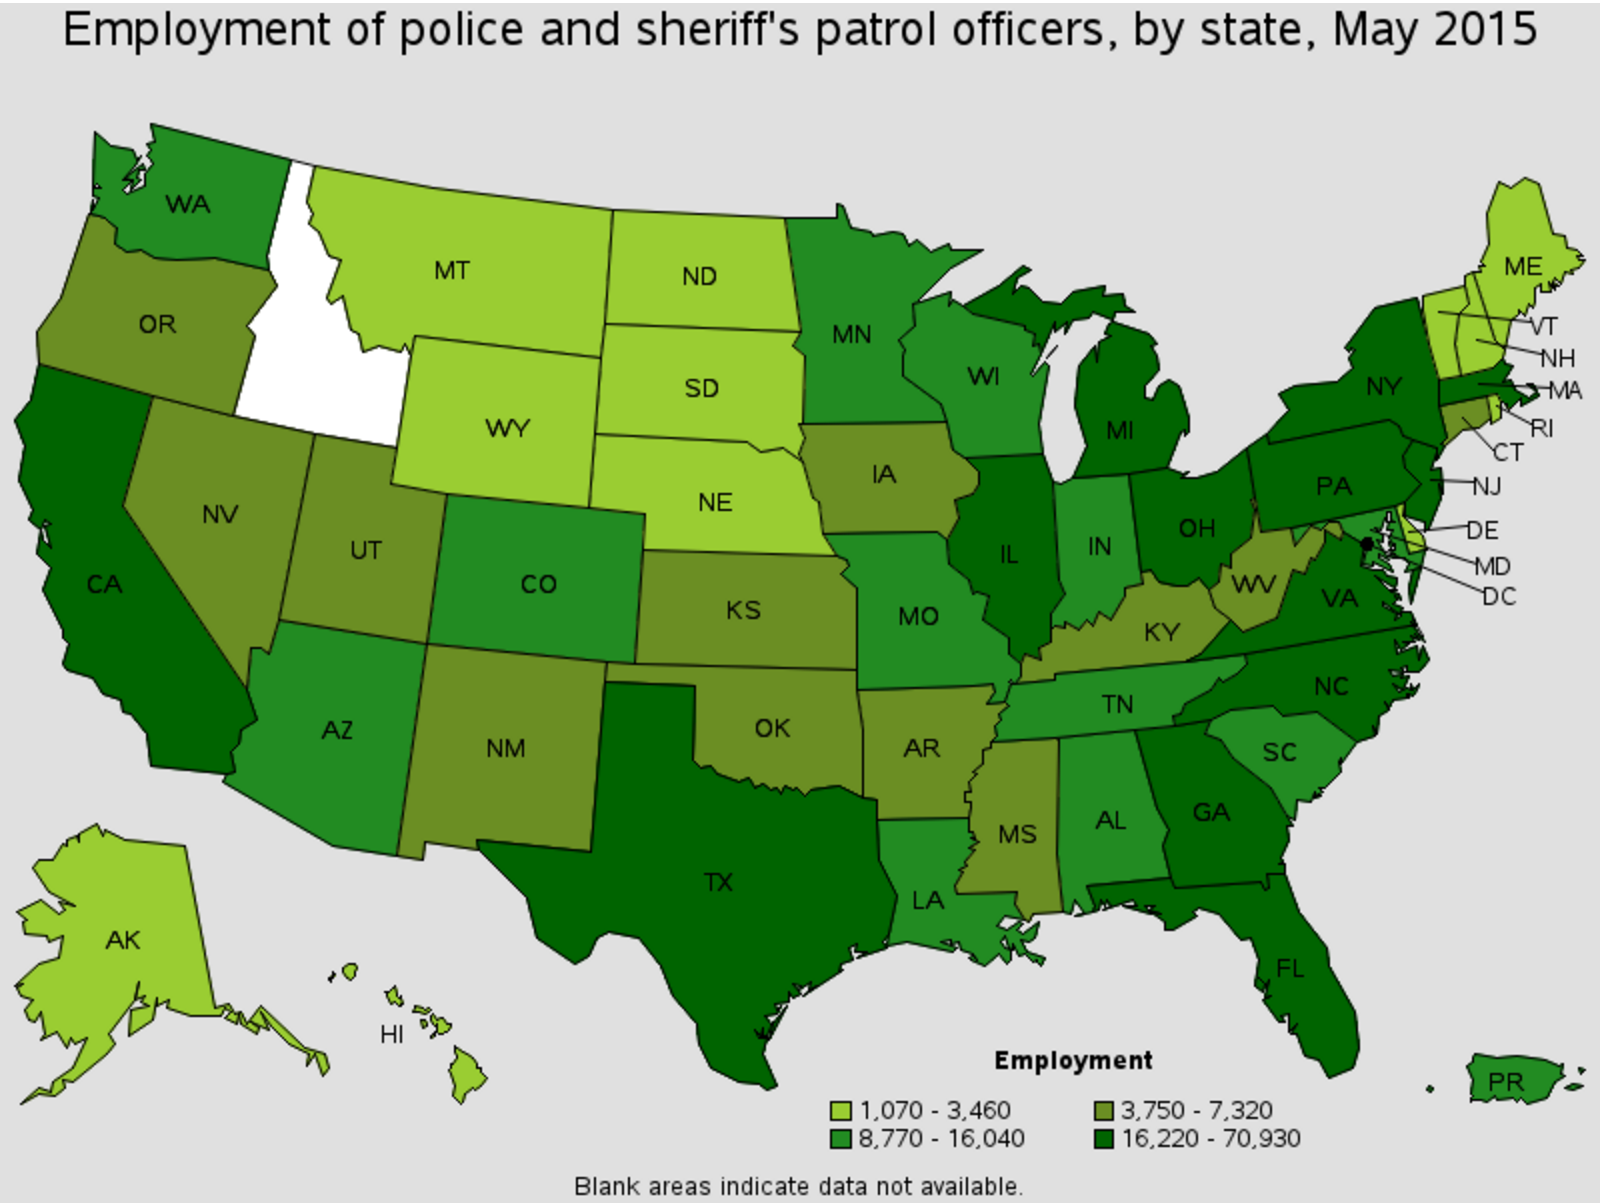 Zarephath police officer career outlook by state